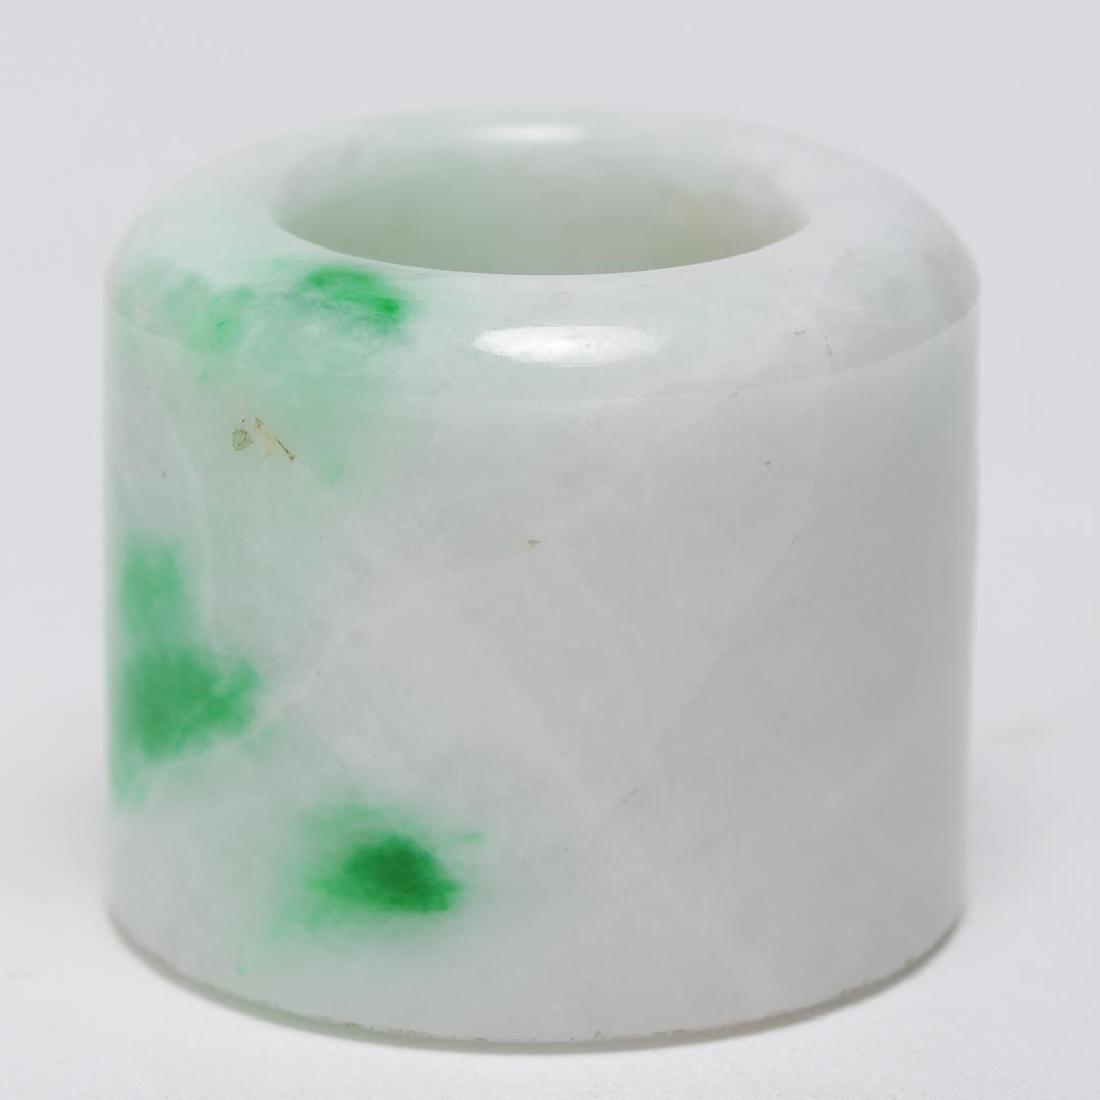 Chinese Mottled Jade Archer's or Thumb Ring, Man's - 4